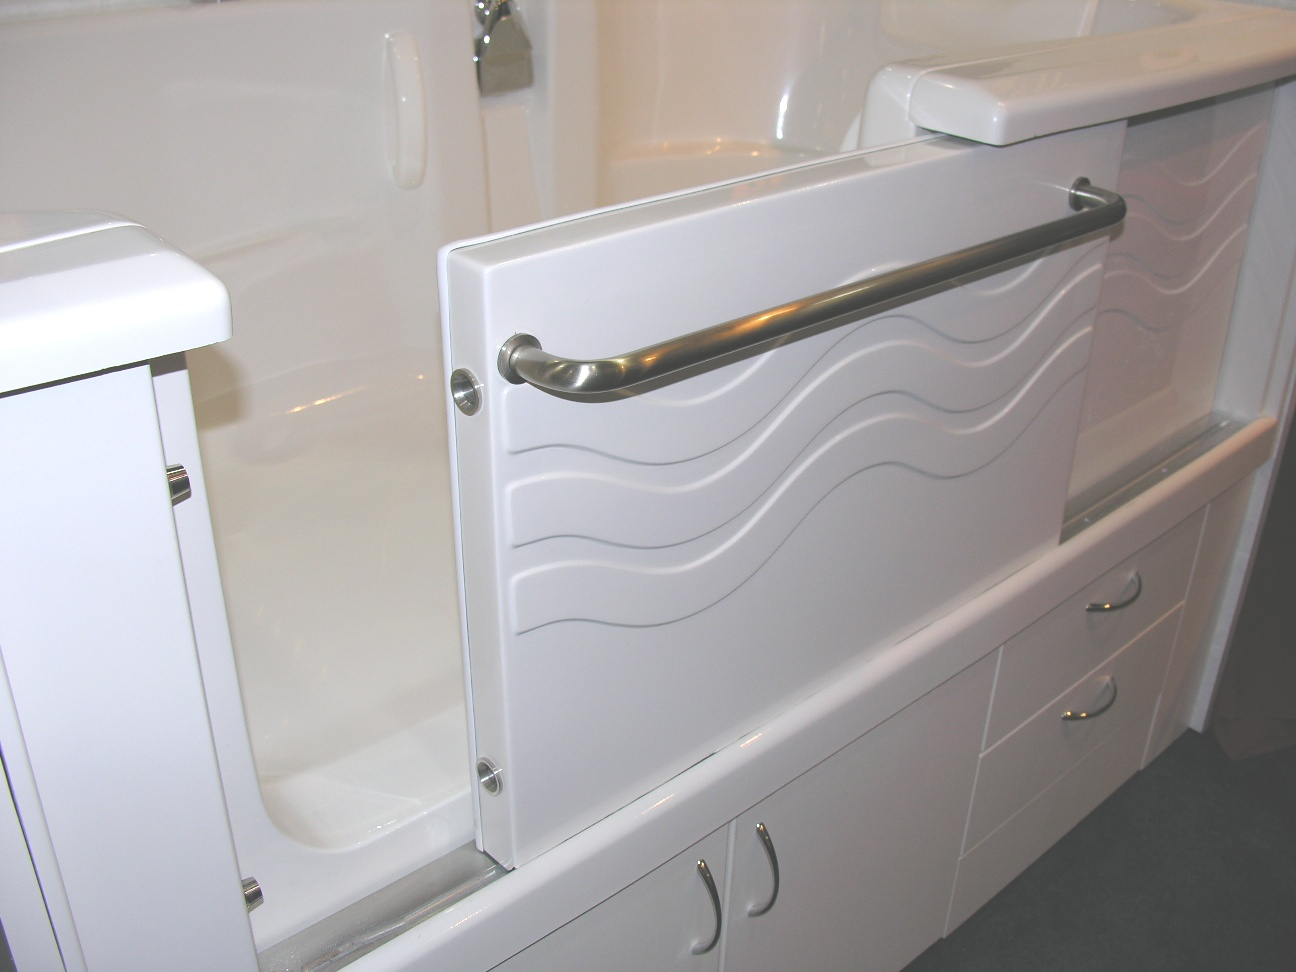 with clear door bathtubs home depot n bathub ba doors the b visnav glass bathtub bath sliding plp